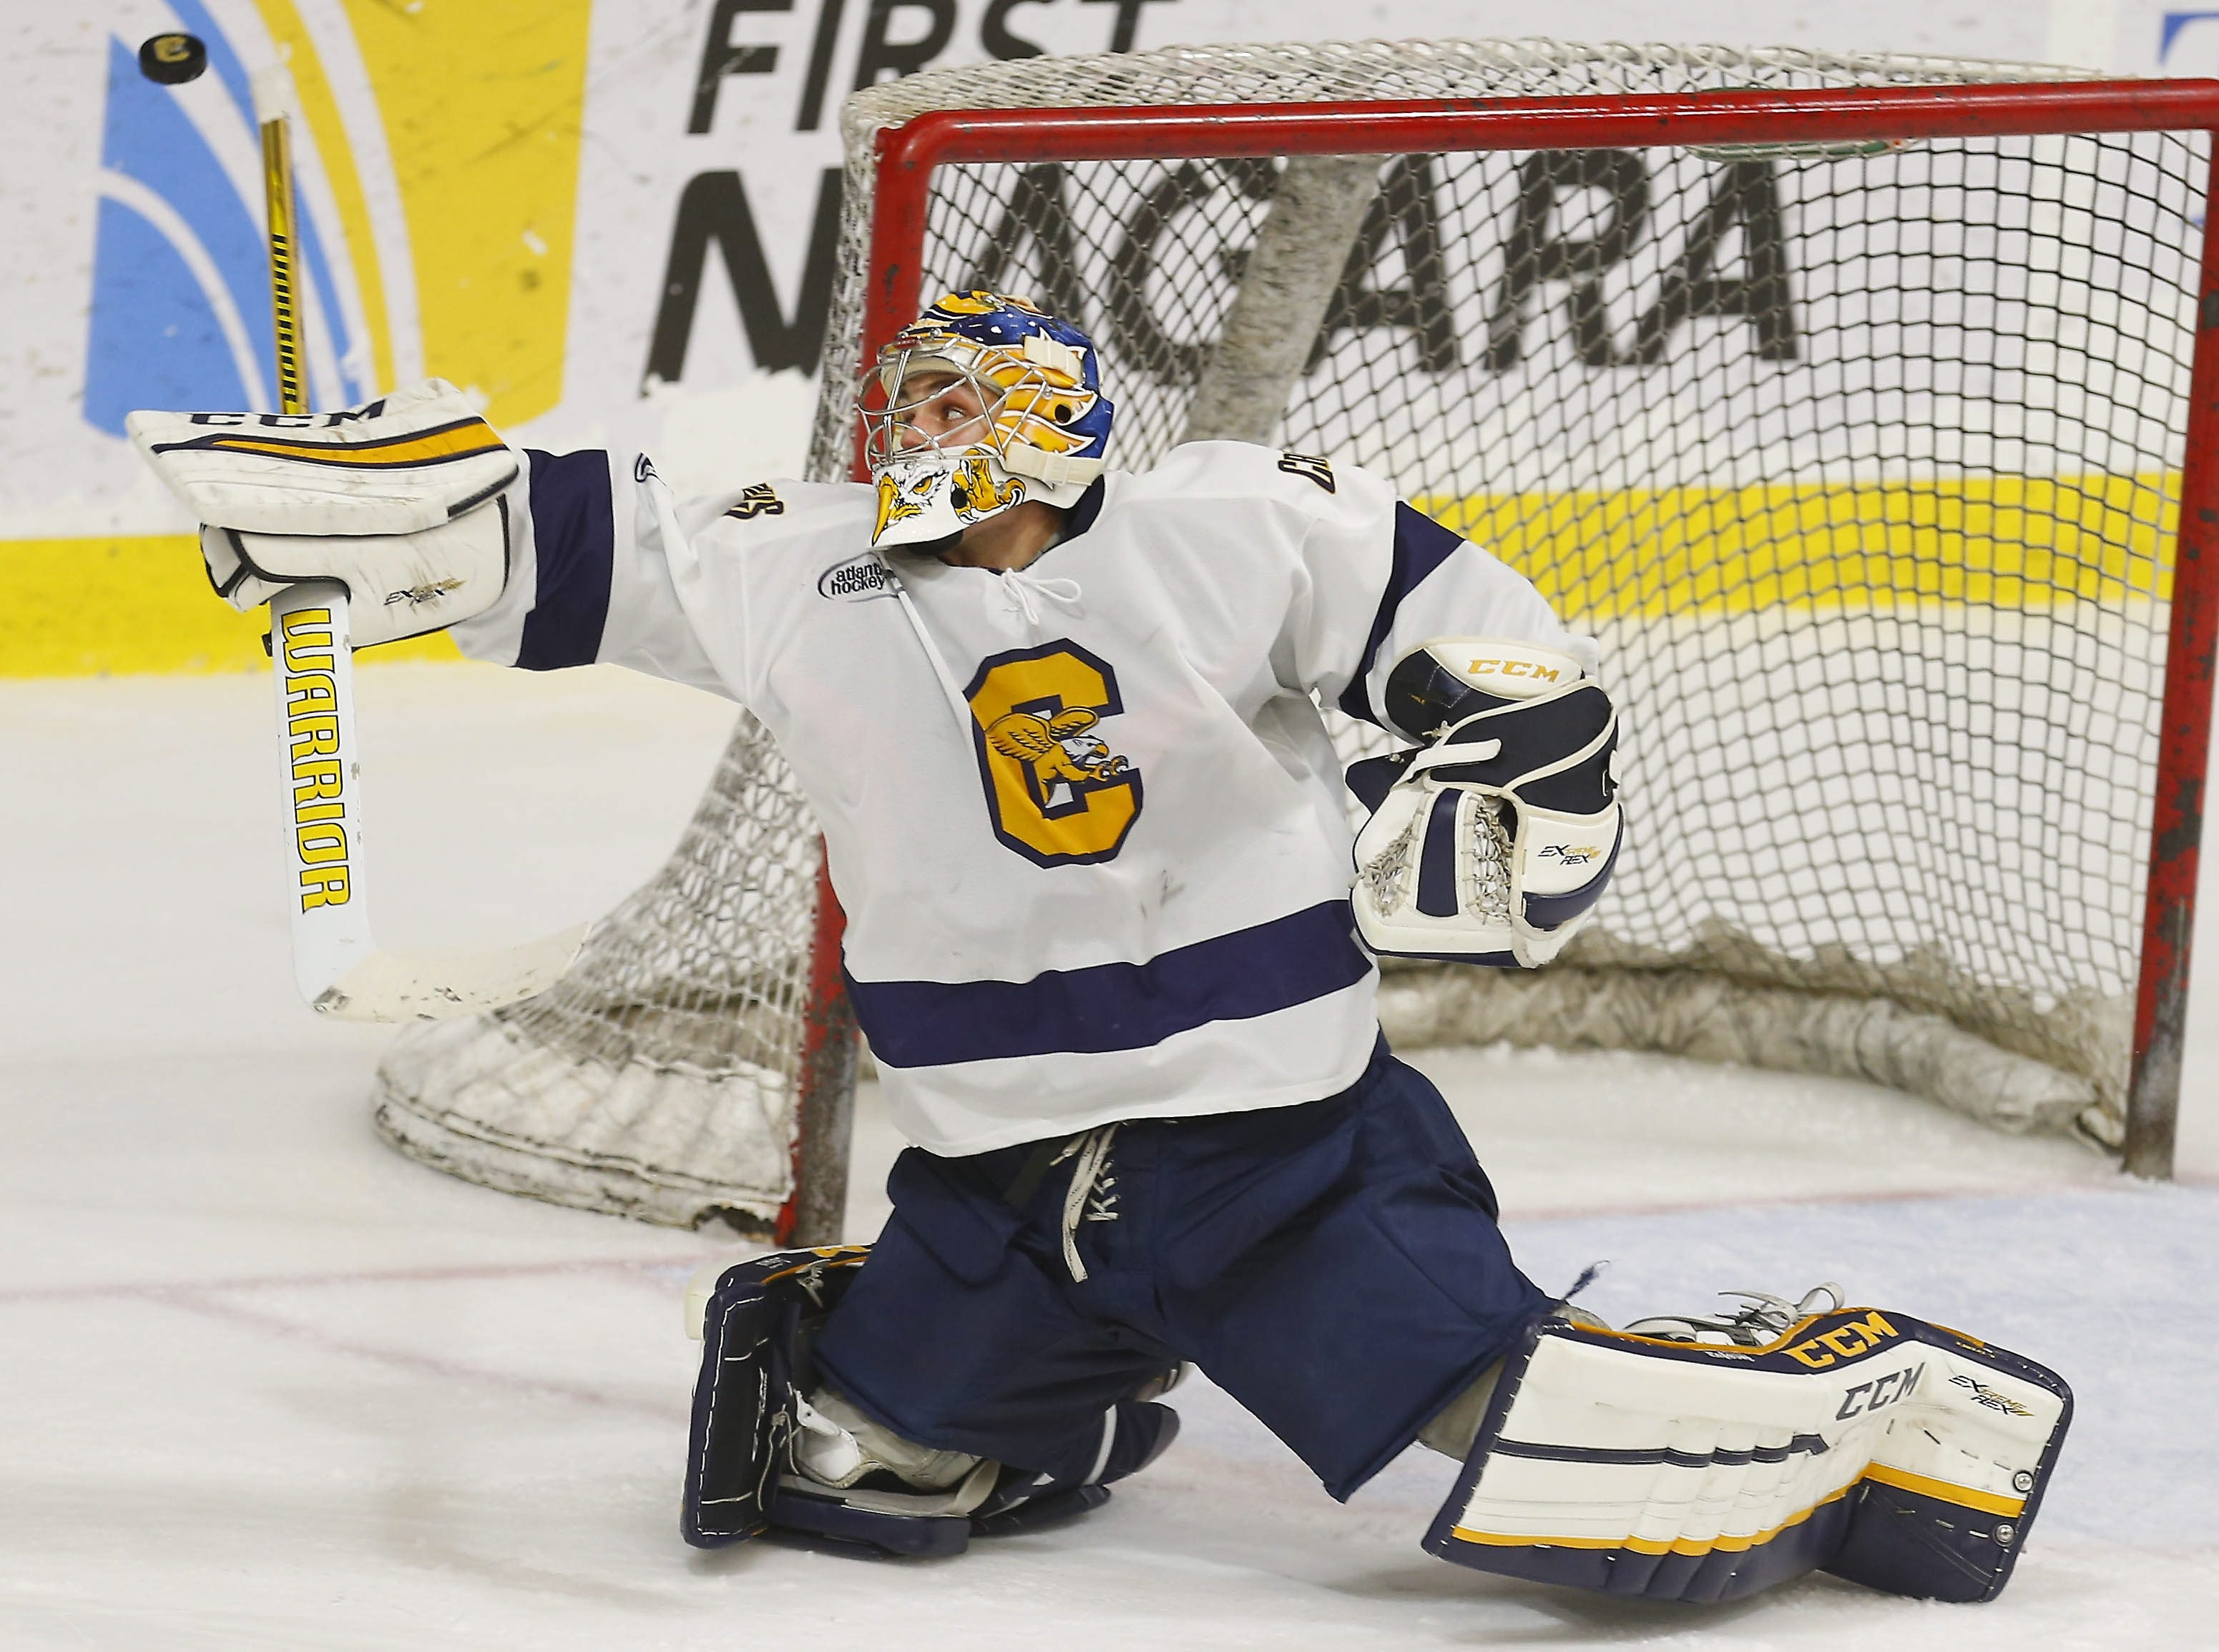 Canisius' Reilly Turner turned in solid efforts in back-to-back games against Air Force over the weekend in Colorado.